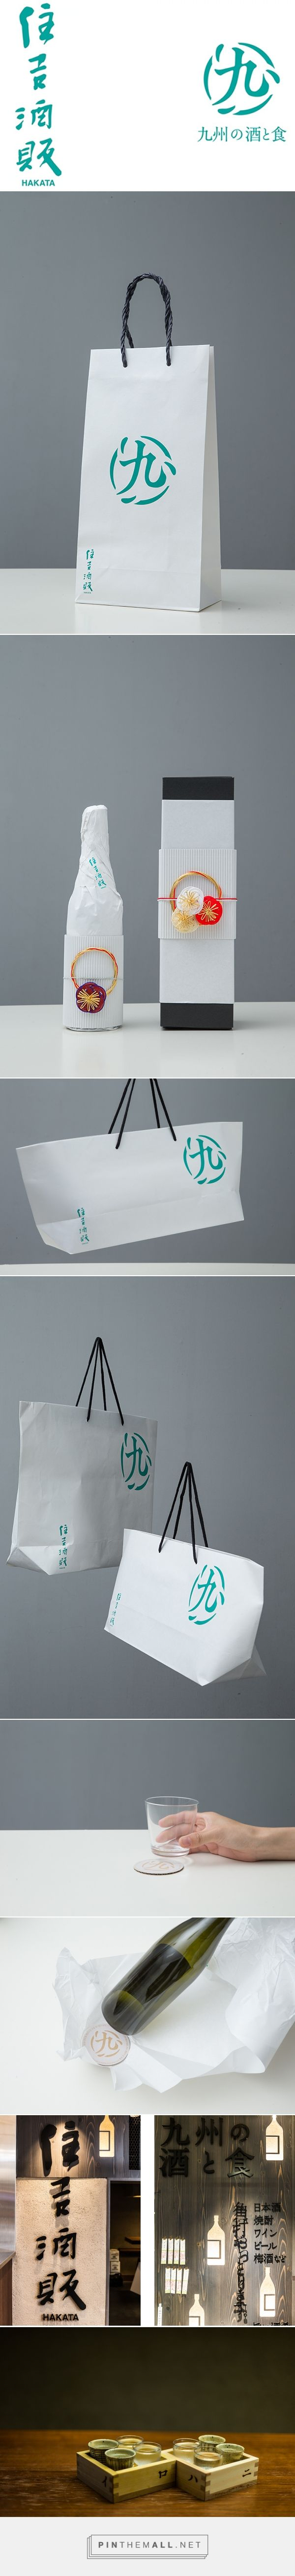 テツシンデザインオフィス  :  住吉酒販 curated by Packaging Diva PD. Hakata beautiful packaging created via http://tetusin.com/tool/%E4%BD%8F%E5%90%89%E9%85%92%E8%B2%A9/